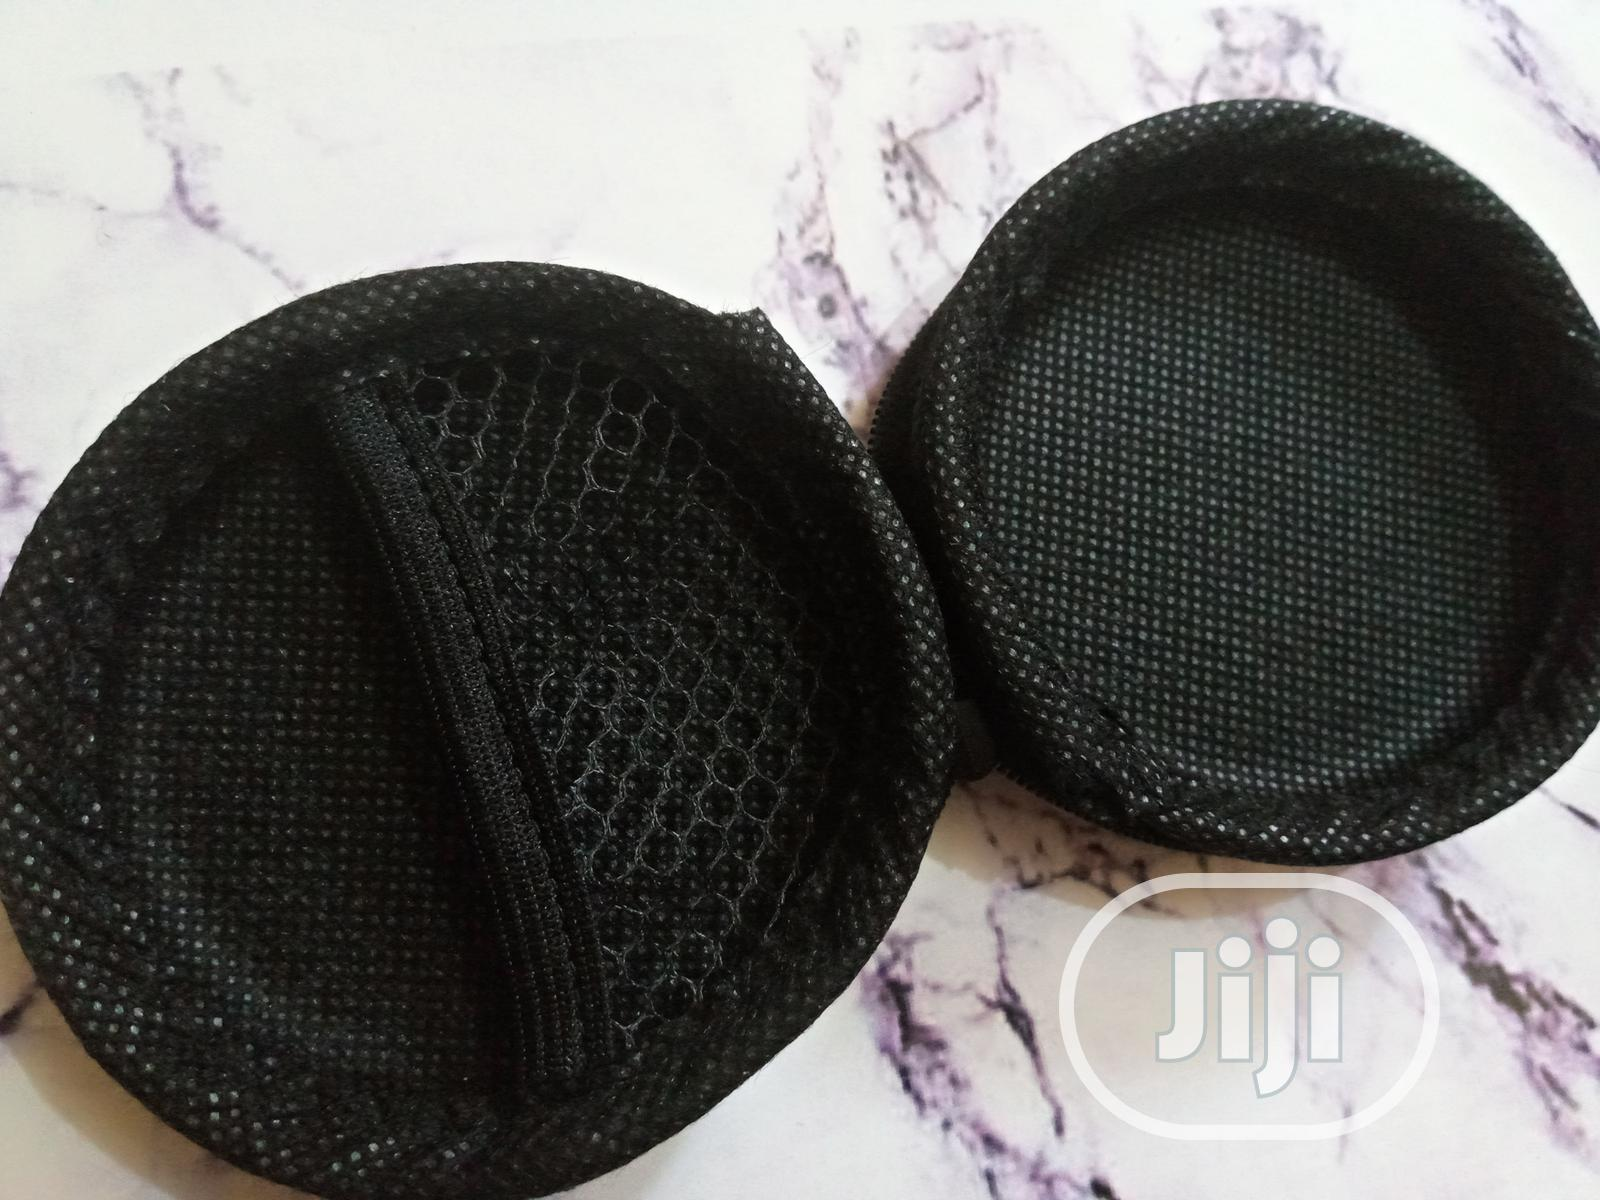 Waterproof Earphone And Cord Cases Pouch | Accessories & Supplies for Electronics for sale in Surulere, Lagos State, Nigeria